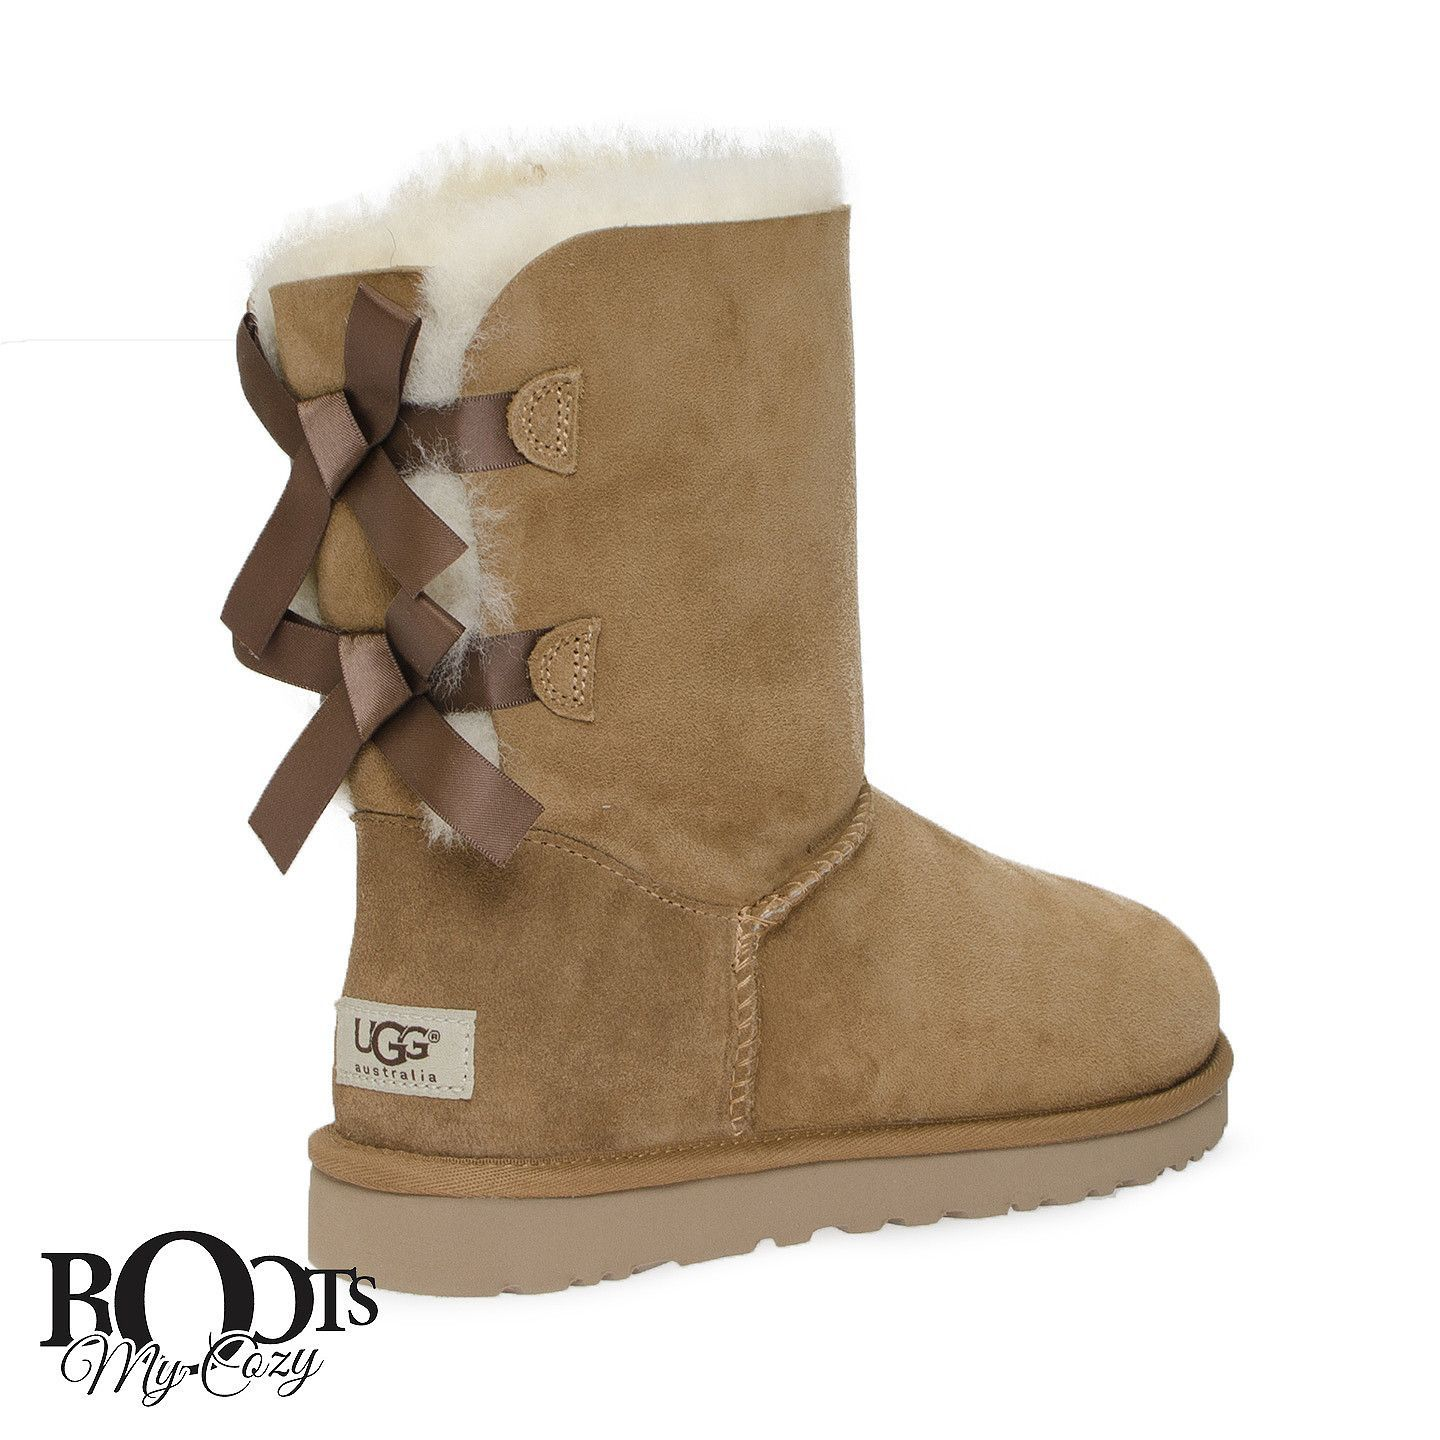 d8b53f9f88b FEATURES - 17mm grade A twinface sheepskin  sueded heel guards and nylon  binding - signature UGG woven label - cushy foam insole for extra comfort  covered ...